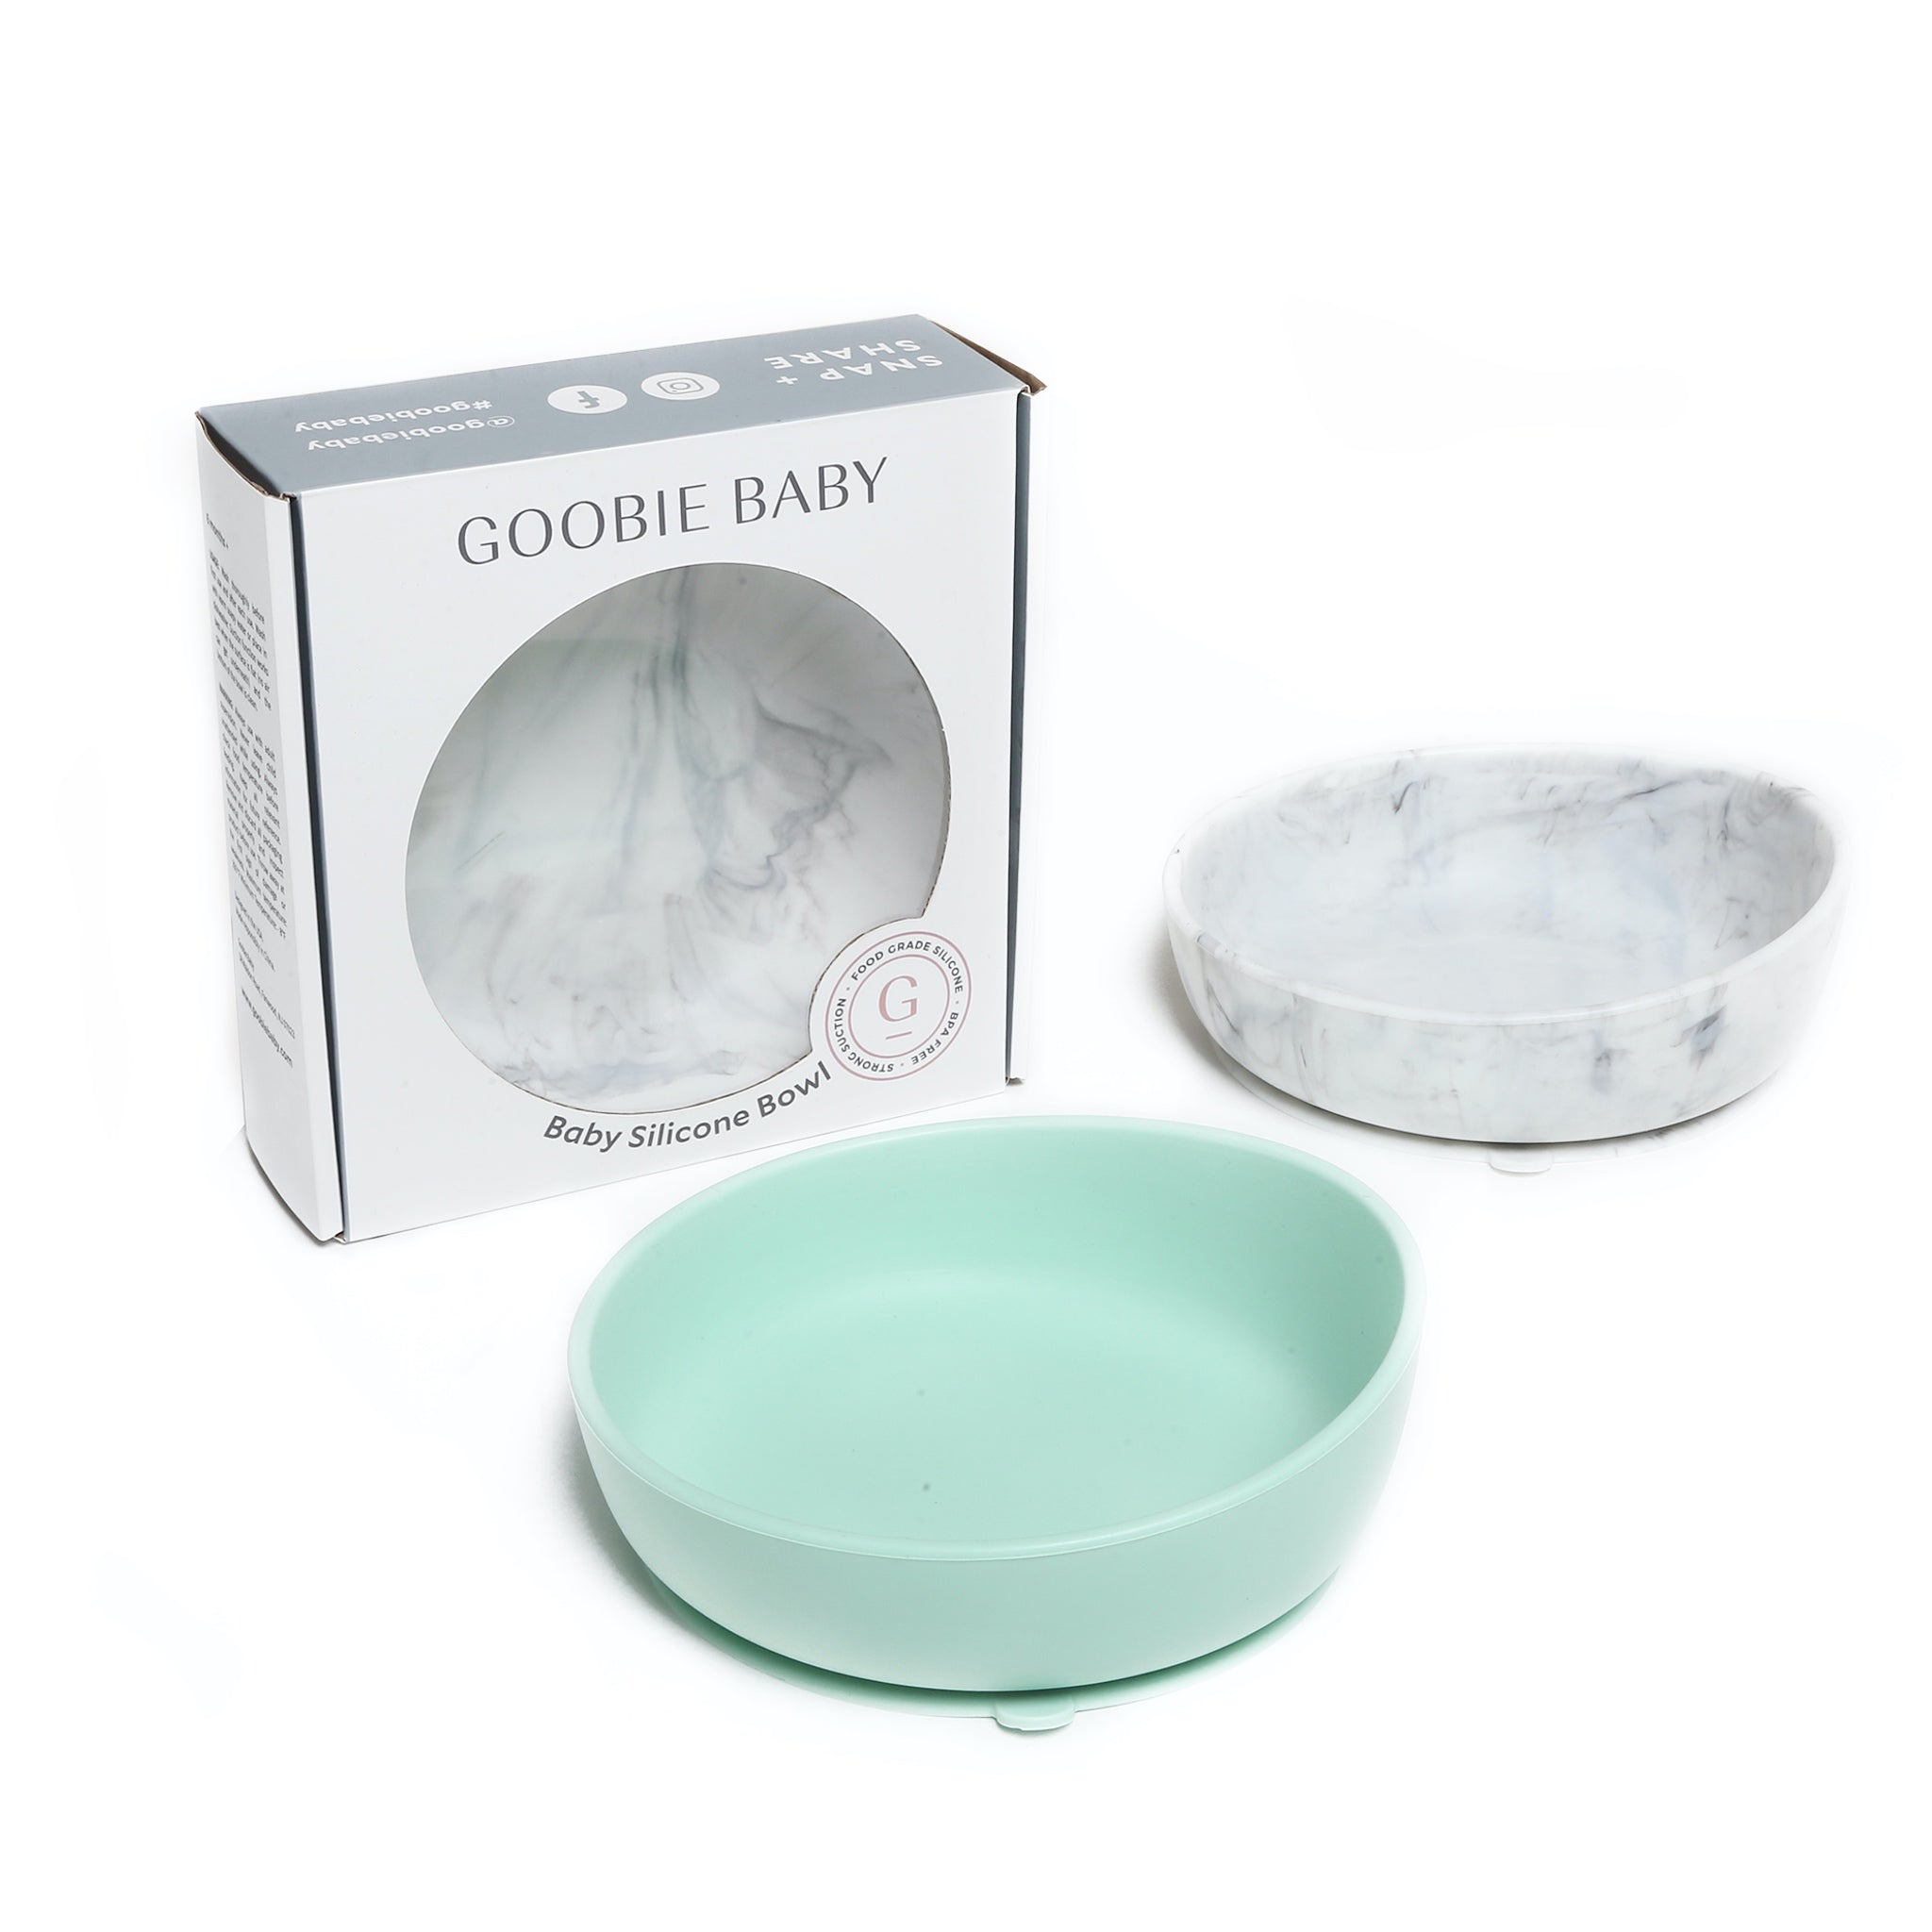 Baby Silicone Bowl Set - Mint & Marble